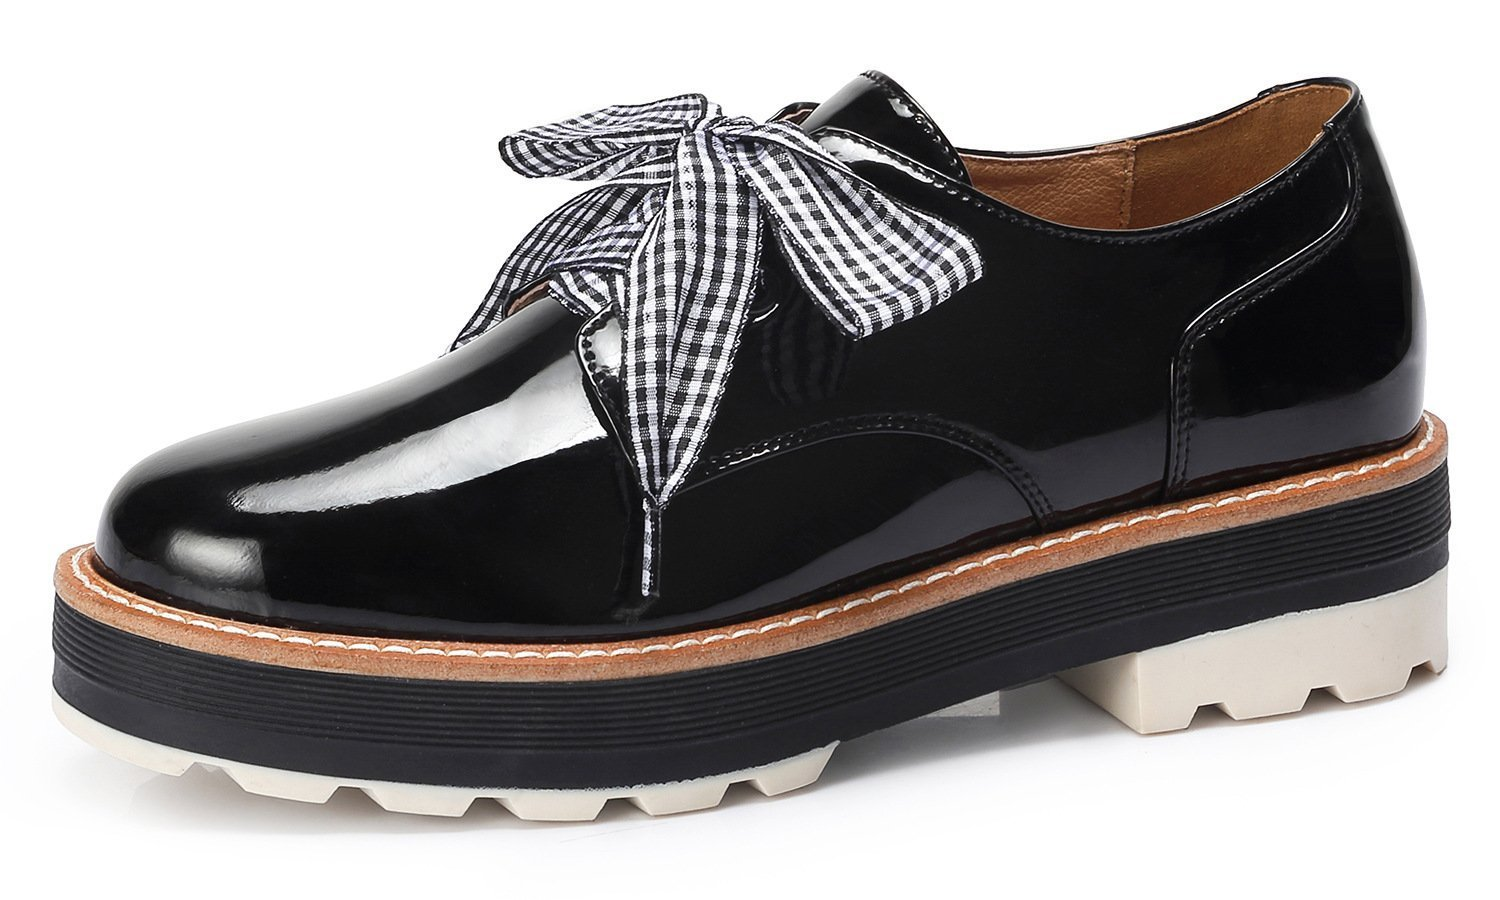 Women's Platform Round Toe Oxfords Checkered Lace-up Big Girls' Sweet Style Oxfords Mid-Heel Wedge Shoes Dress Loafers Black Size 8